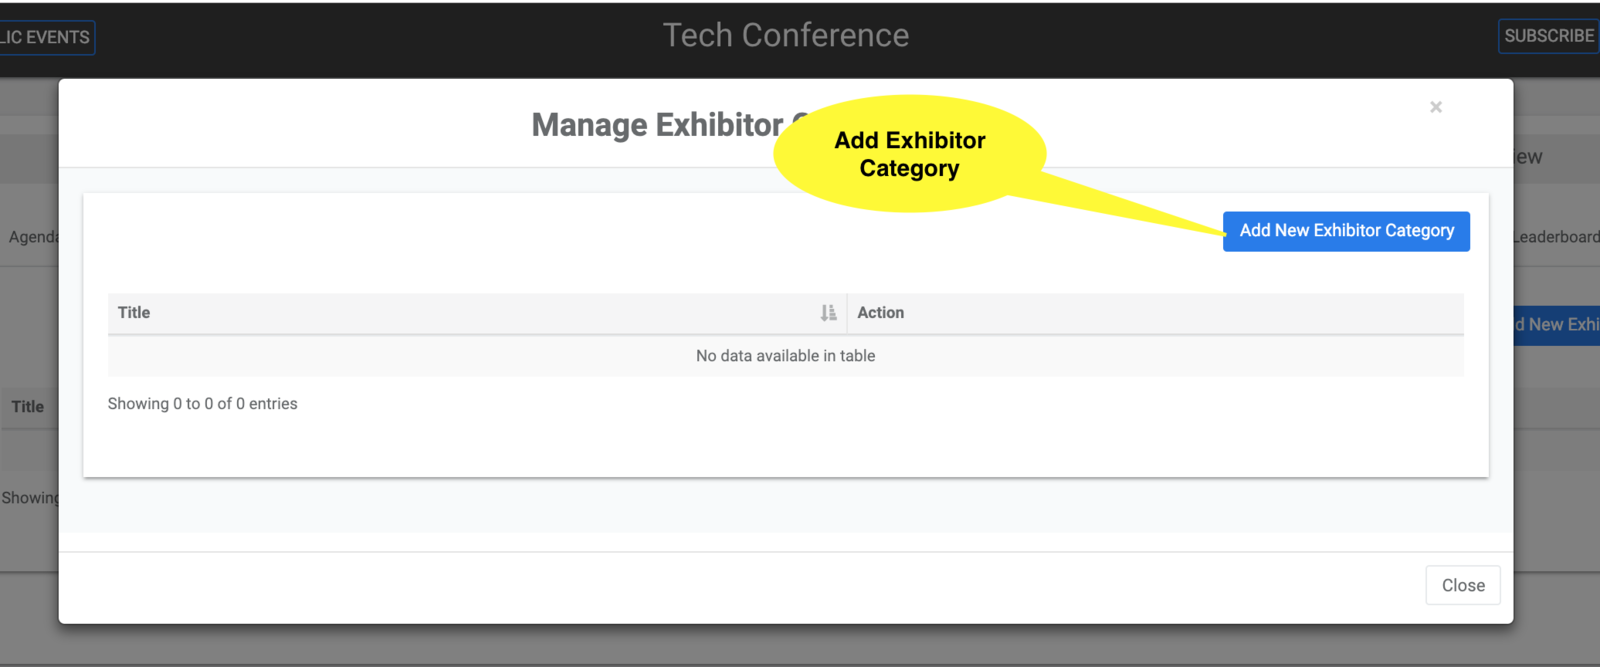 Add Exhibitor Category